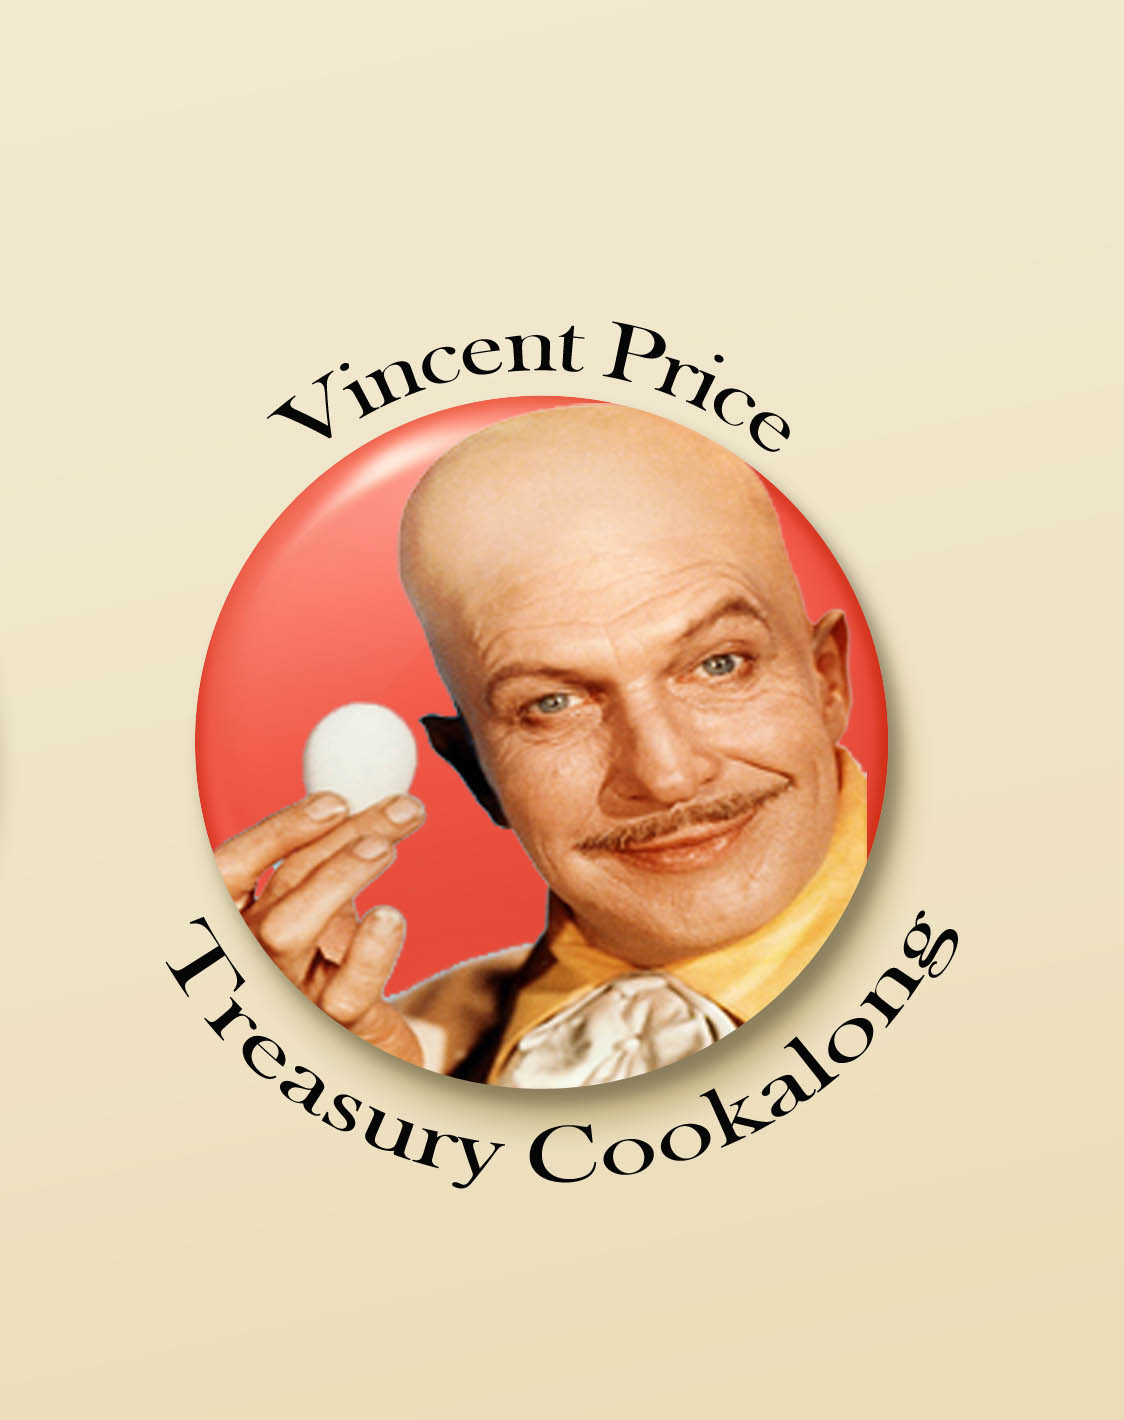 Vincent Price Treasury Cookalong with PRIZES!  All invited!